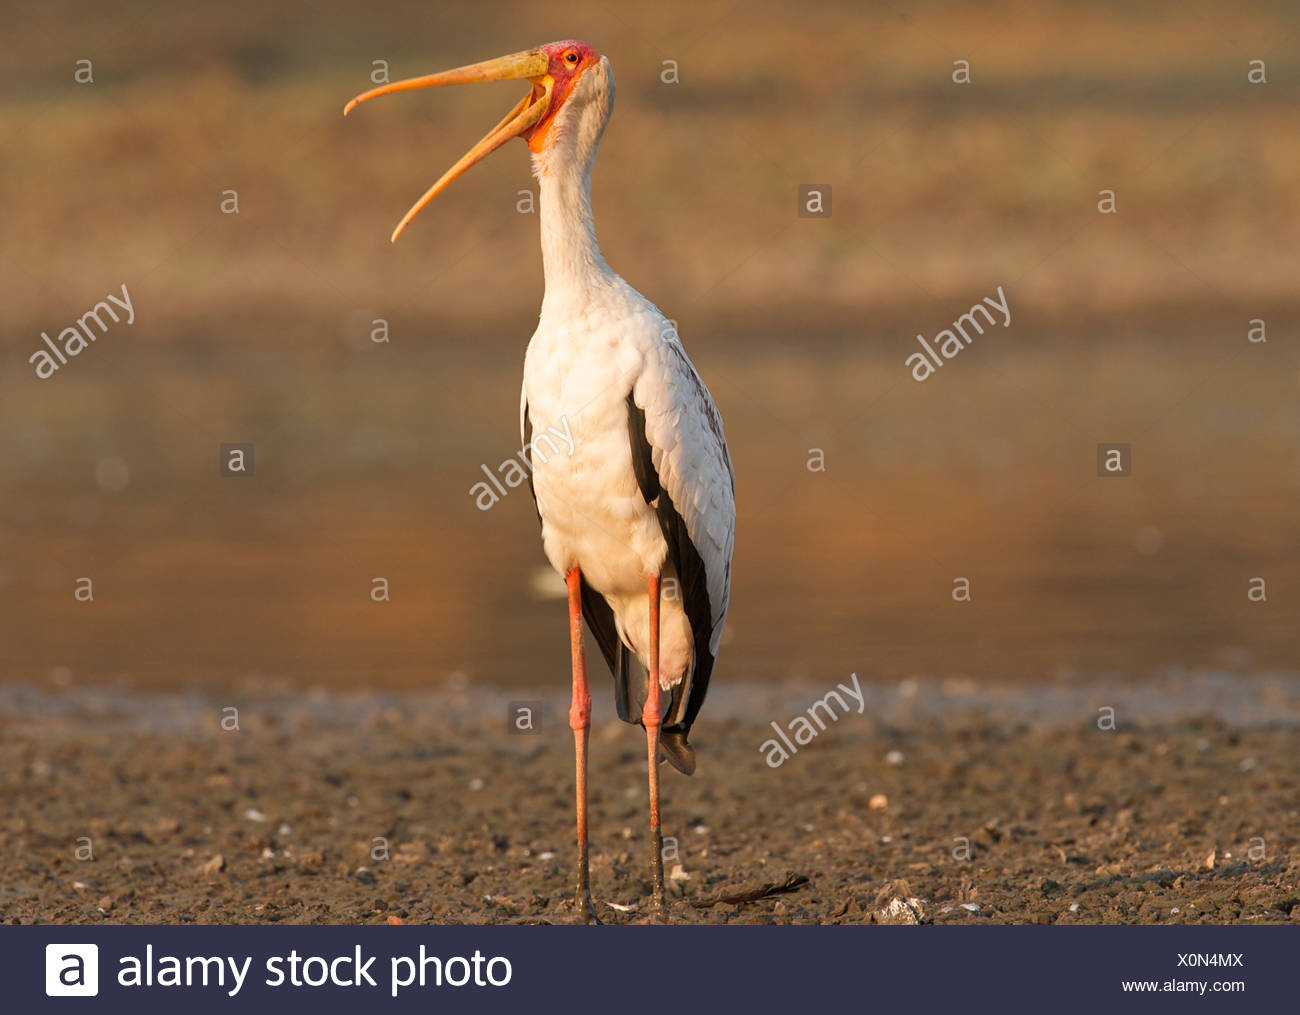 Yellow billed stork - Mycteria ibis, Mana Pools National Park, Zimbabwe, Africa Stock Photo